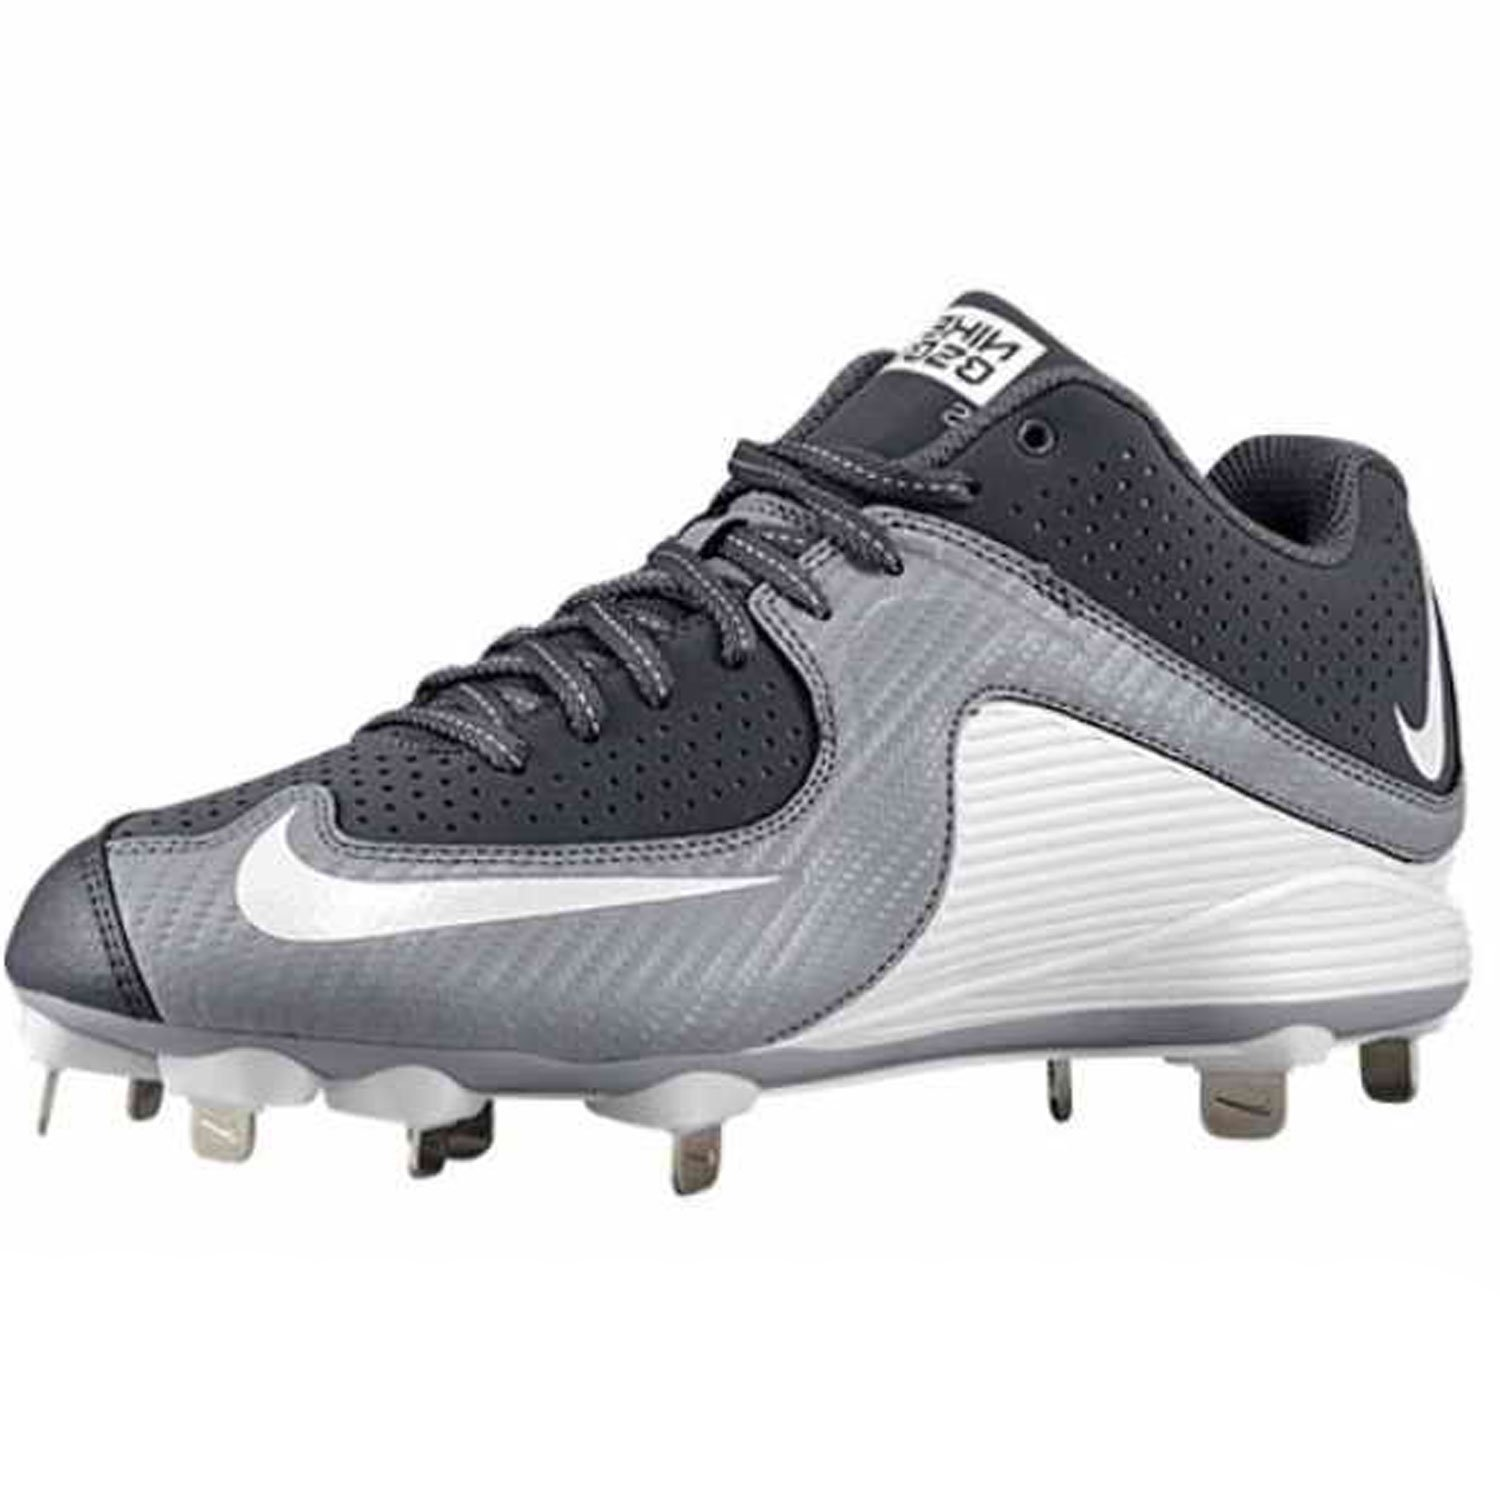 Nike Men's MVP Strike Low Metal Baseball Cleat B00JEME0QK 14.0, 14.0|Graphite/White